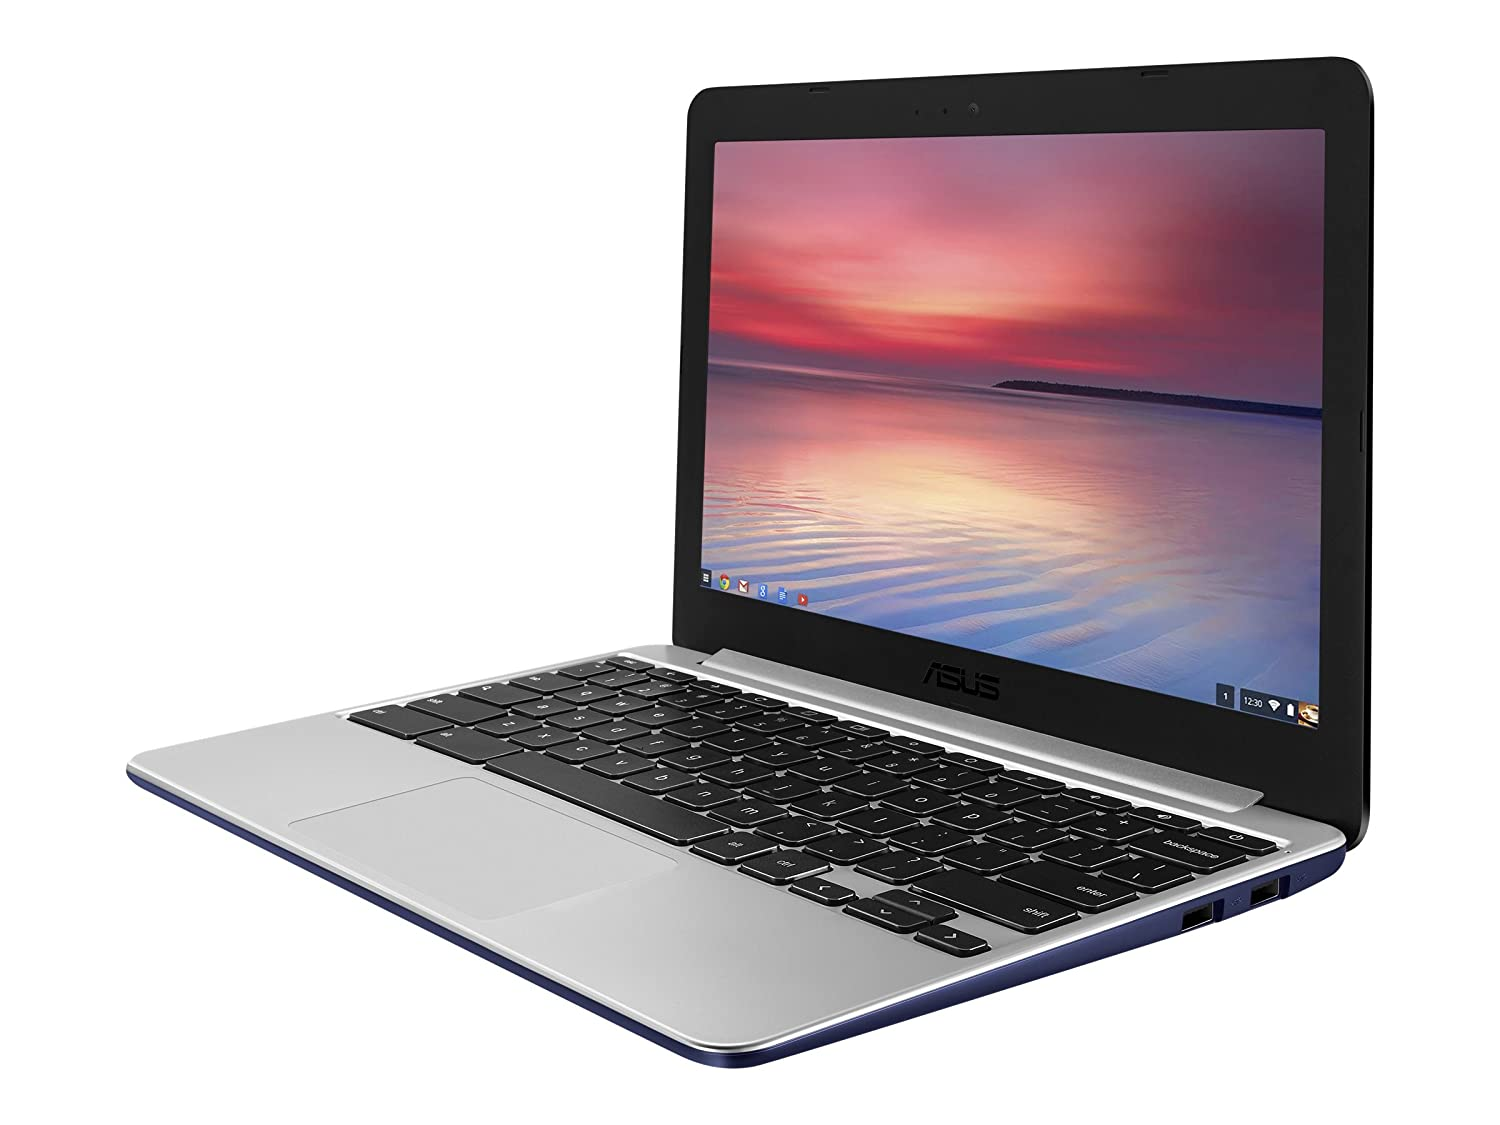 The ASUS C201 is fast and quality Chromebook.